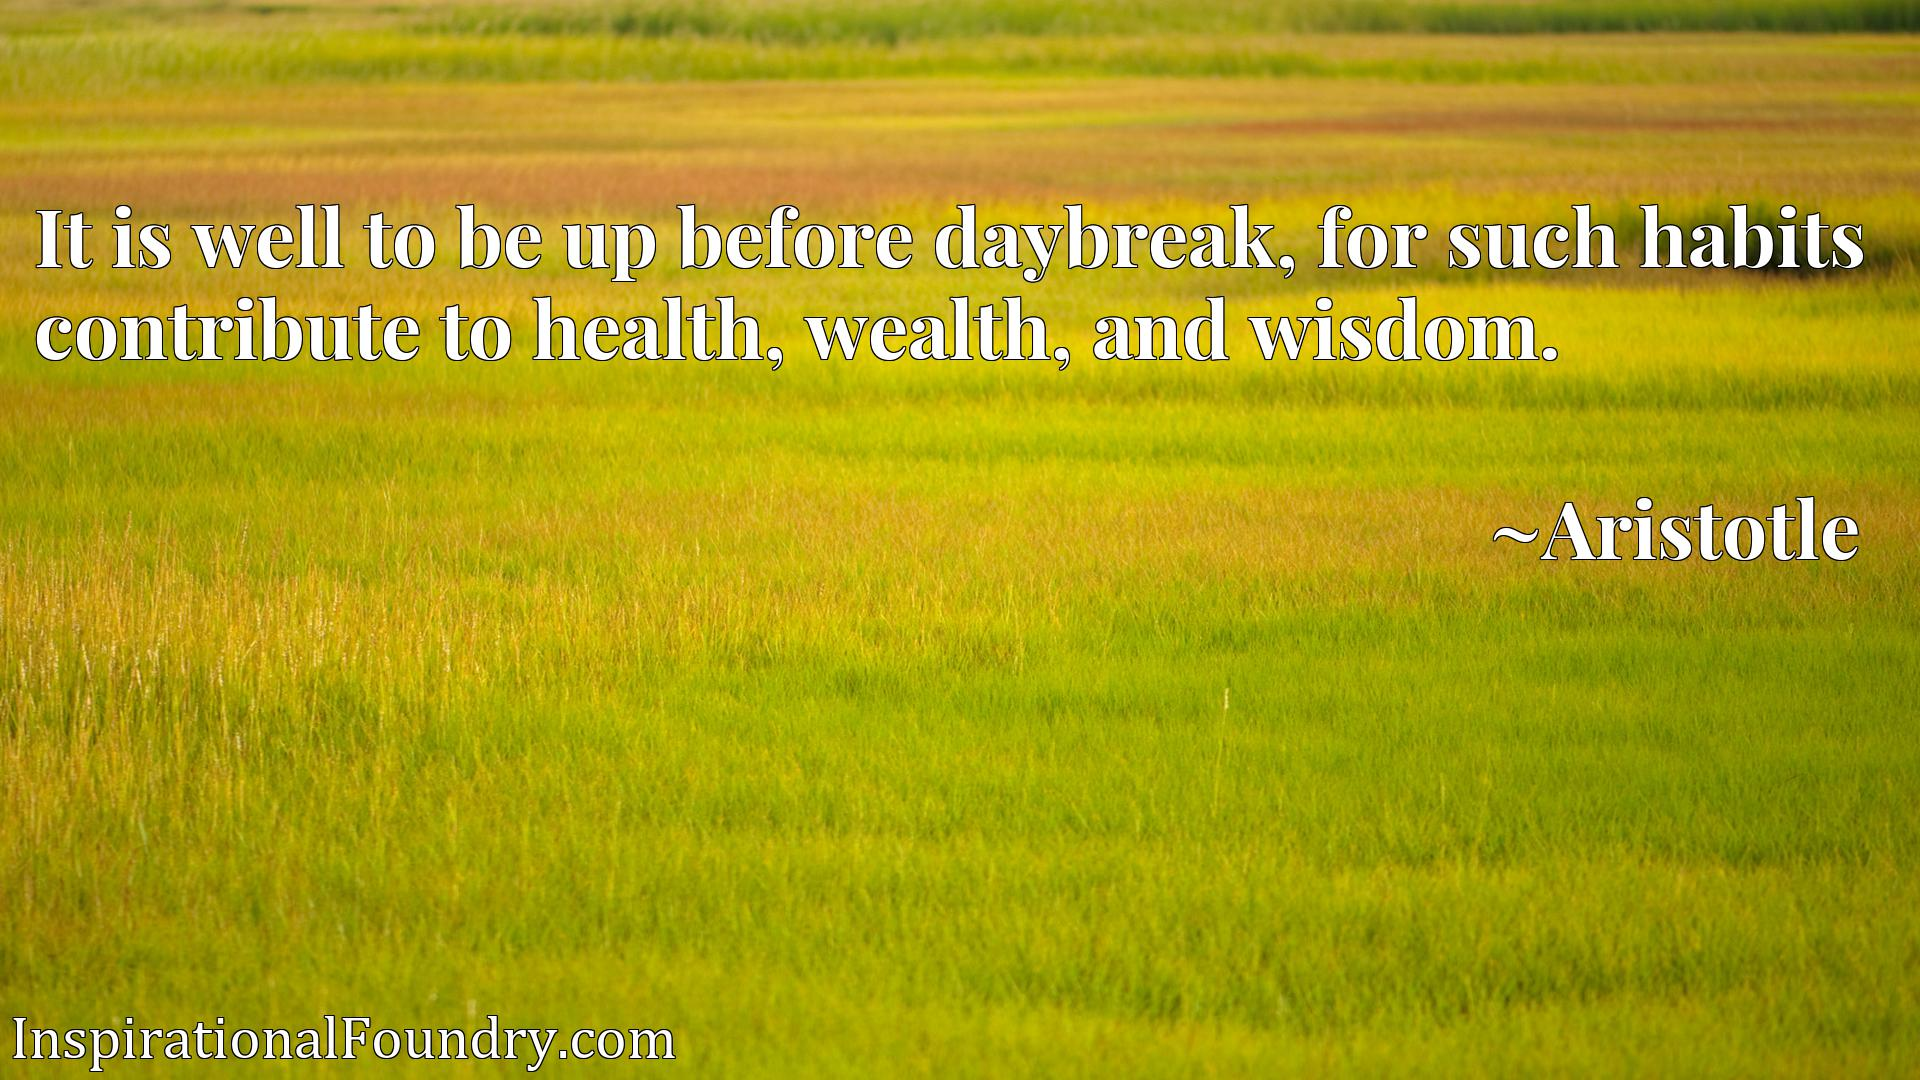 It is well to be up before daybreak, for such habits contribute to health, wealth, and wisdom.